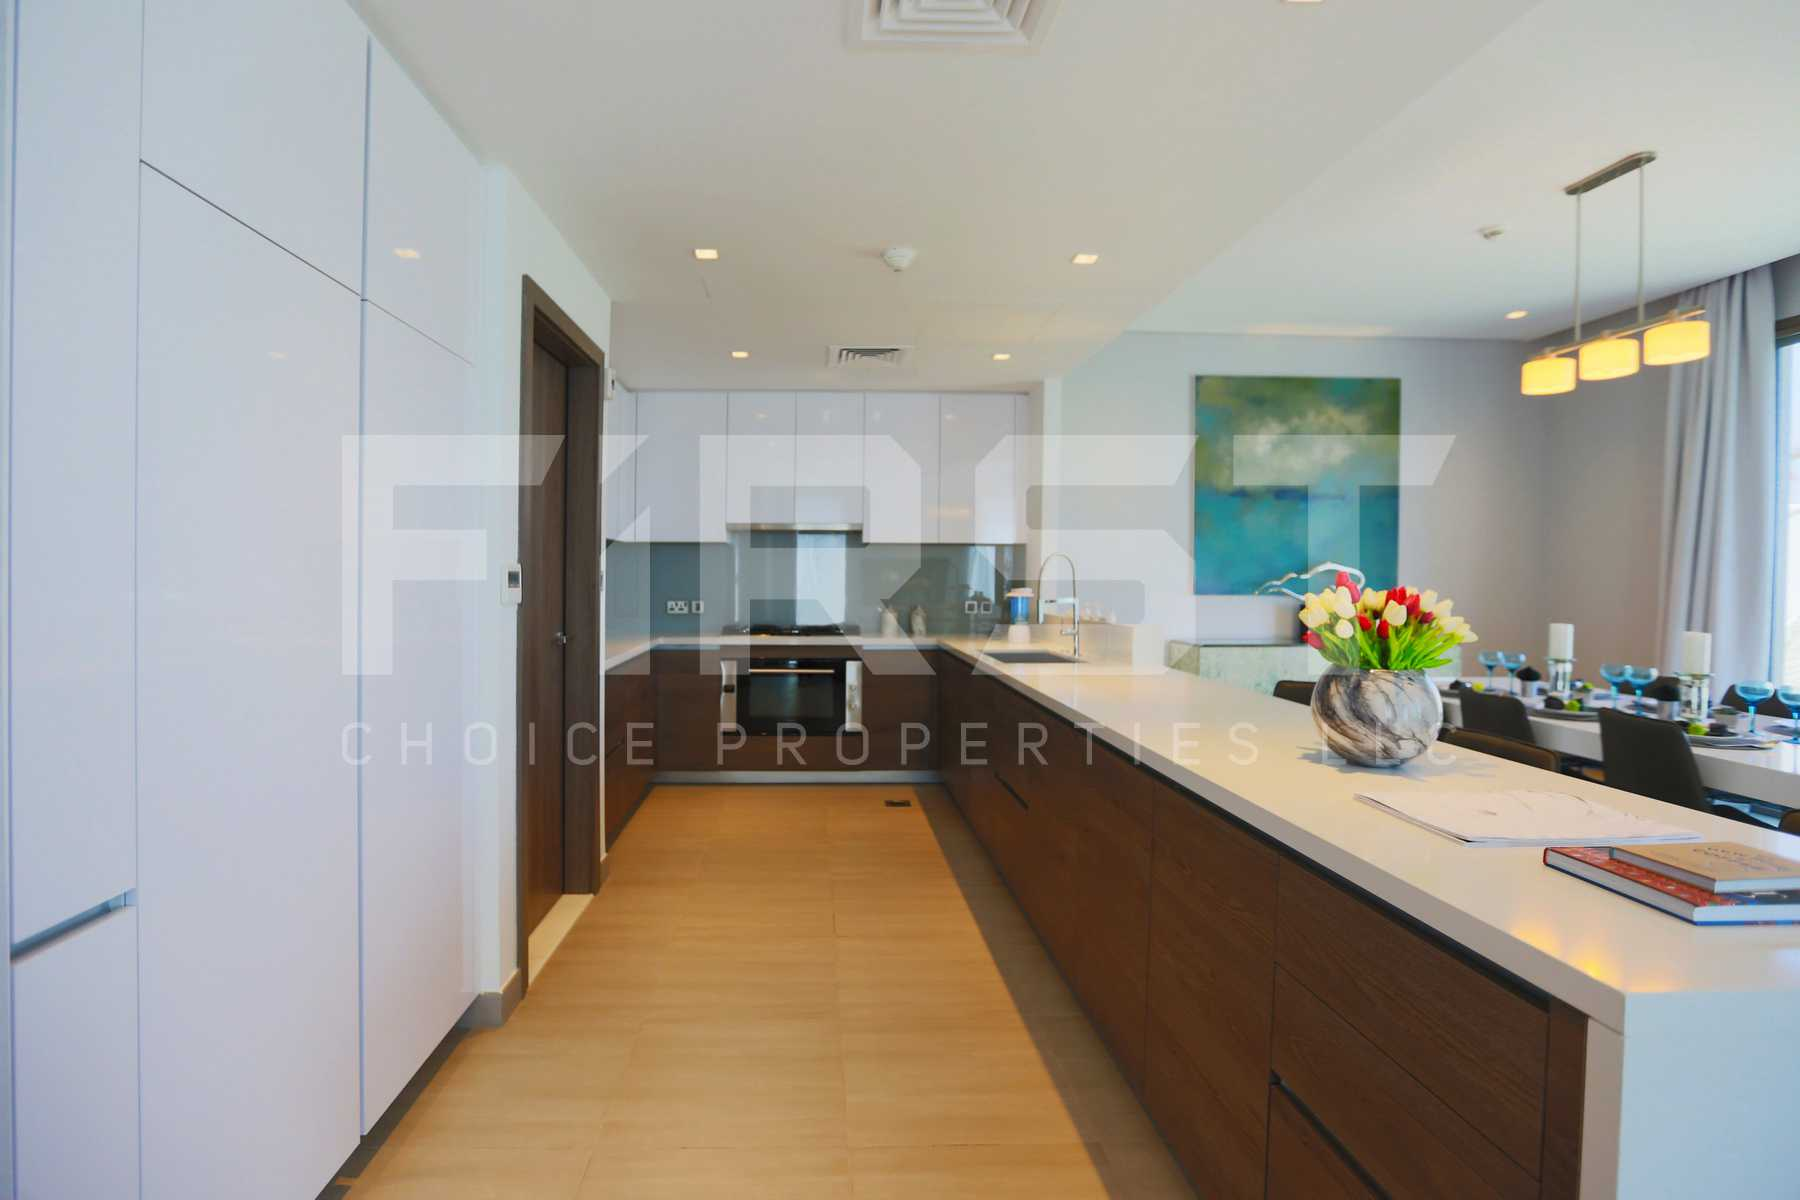 Internal Photo of 3 Bedroom Townhouse Type 3EA in Yas Acres Yas Island Abu Dhabi UAE (6).jpg